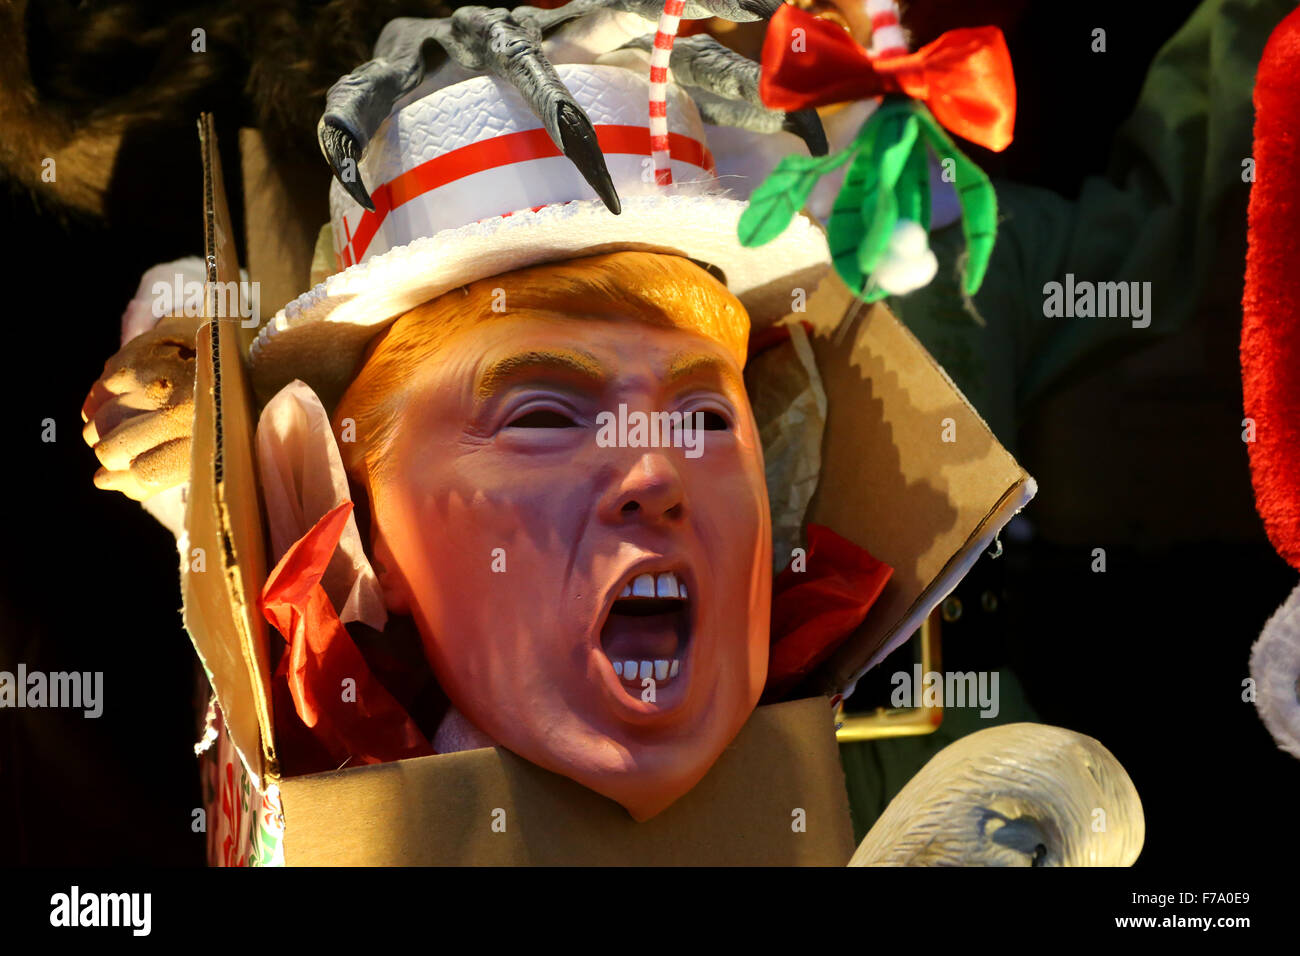 Donald Trump the scrooge, in a costume store display window - Stock Image